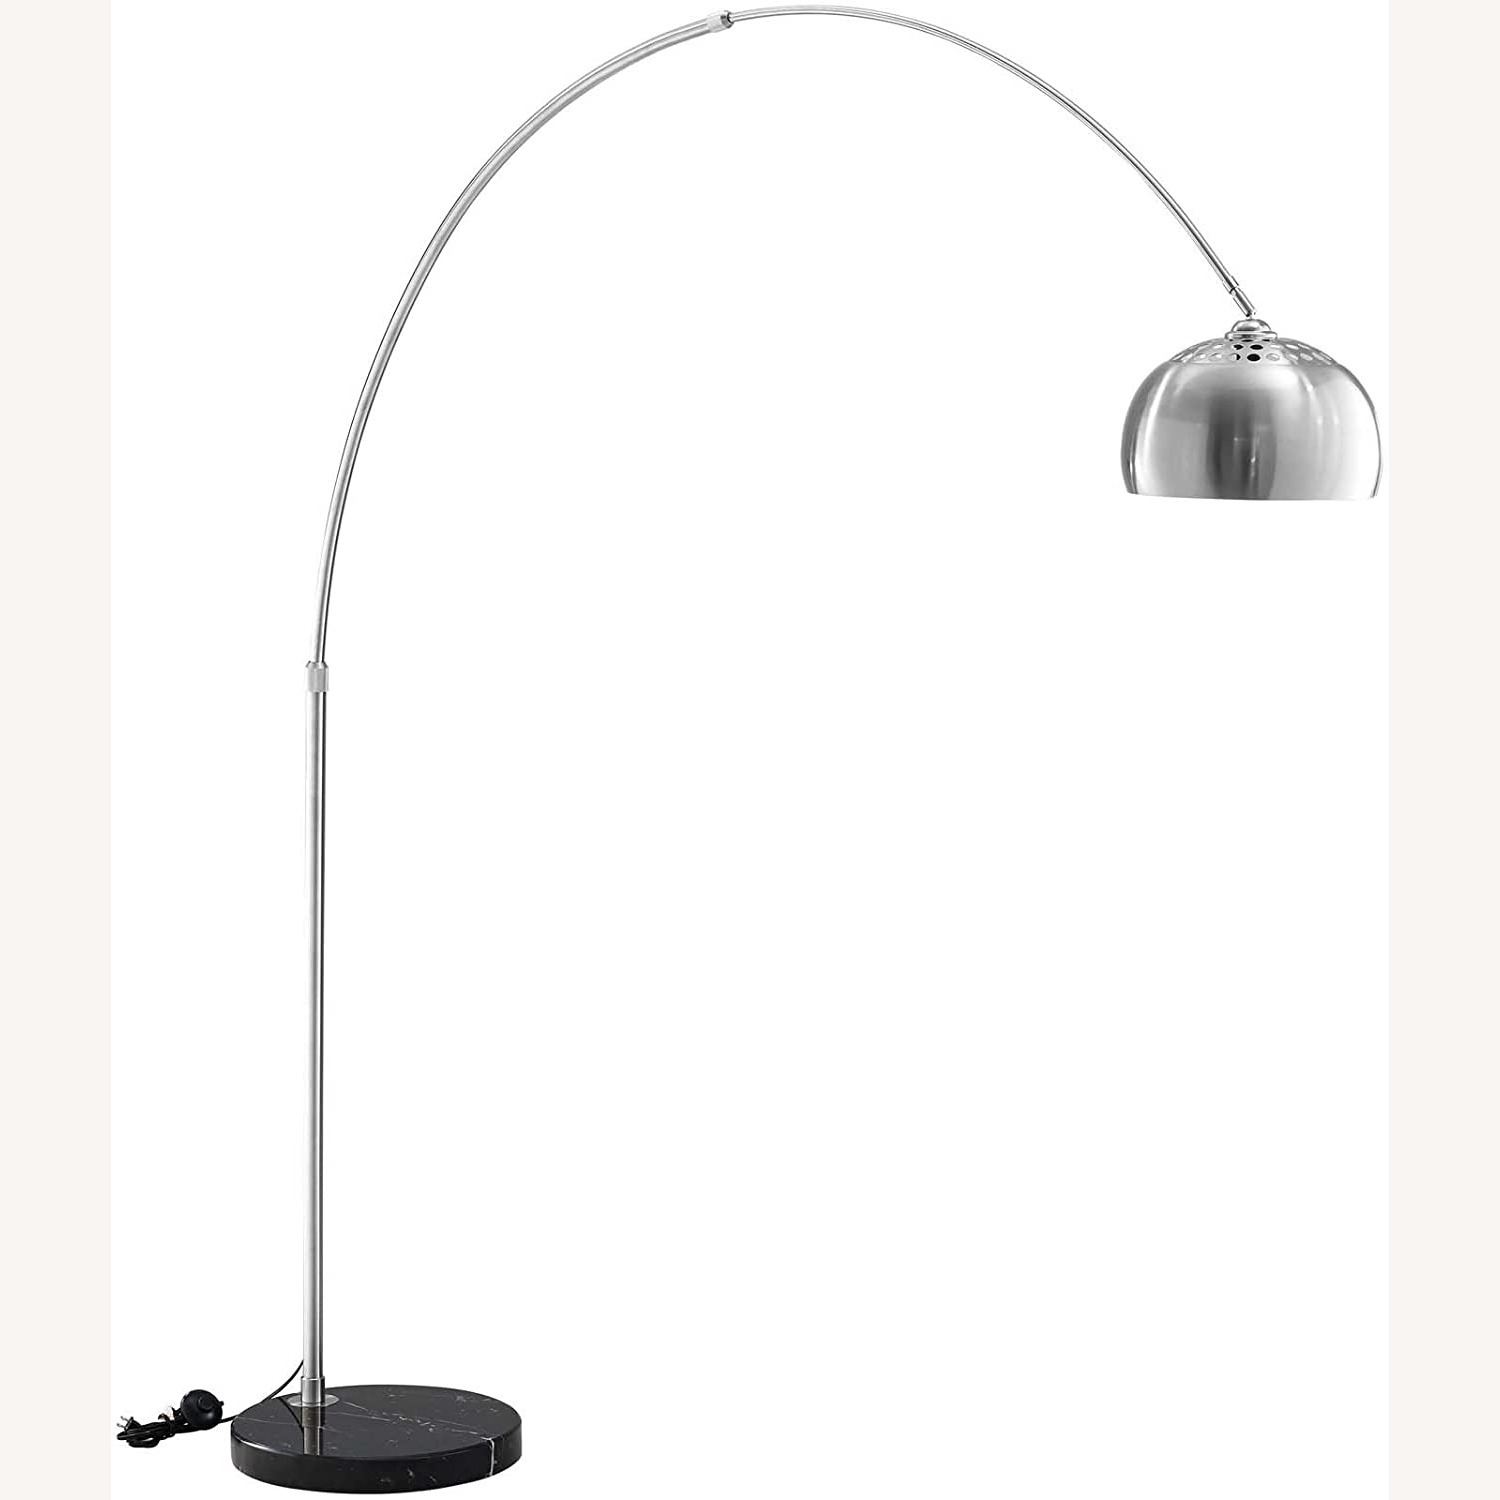 Modway Silver Modern Arc Lamp with Black Marble Base - image-1